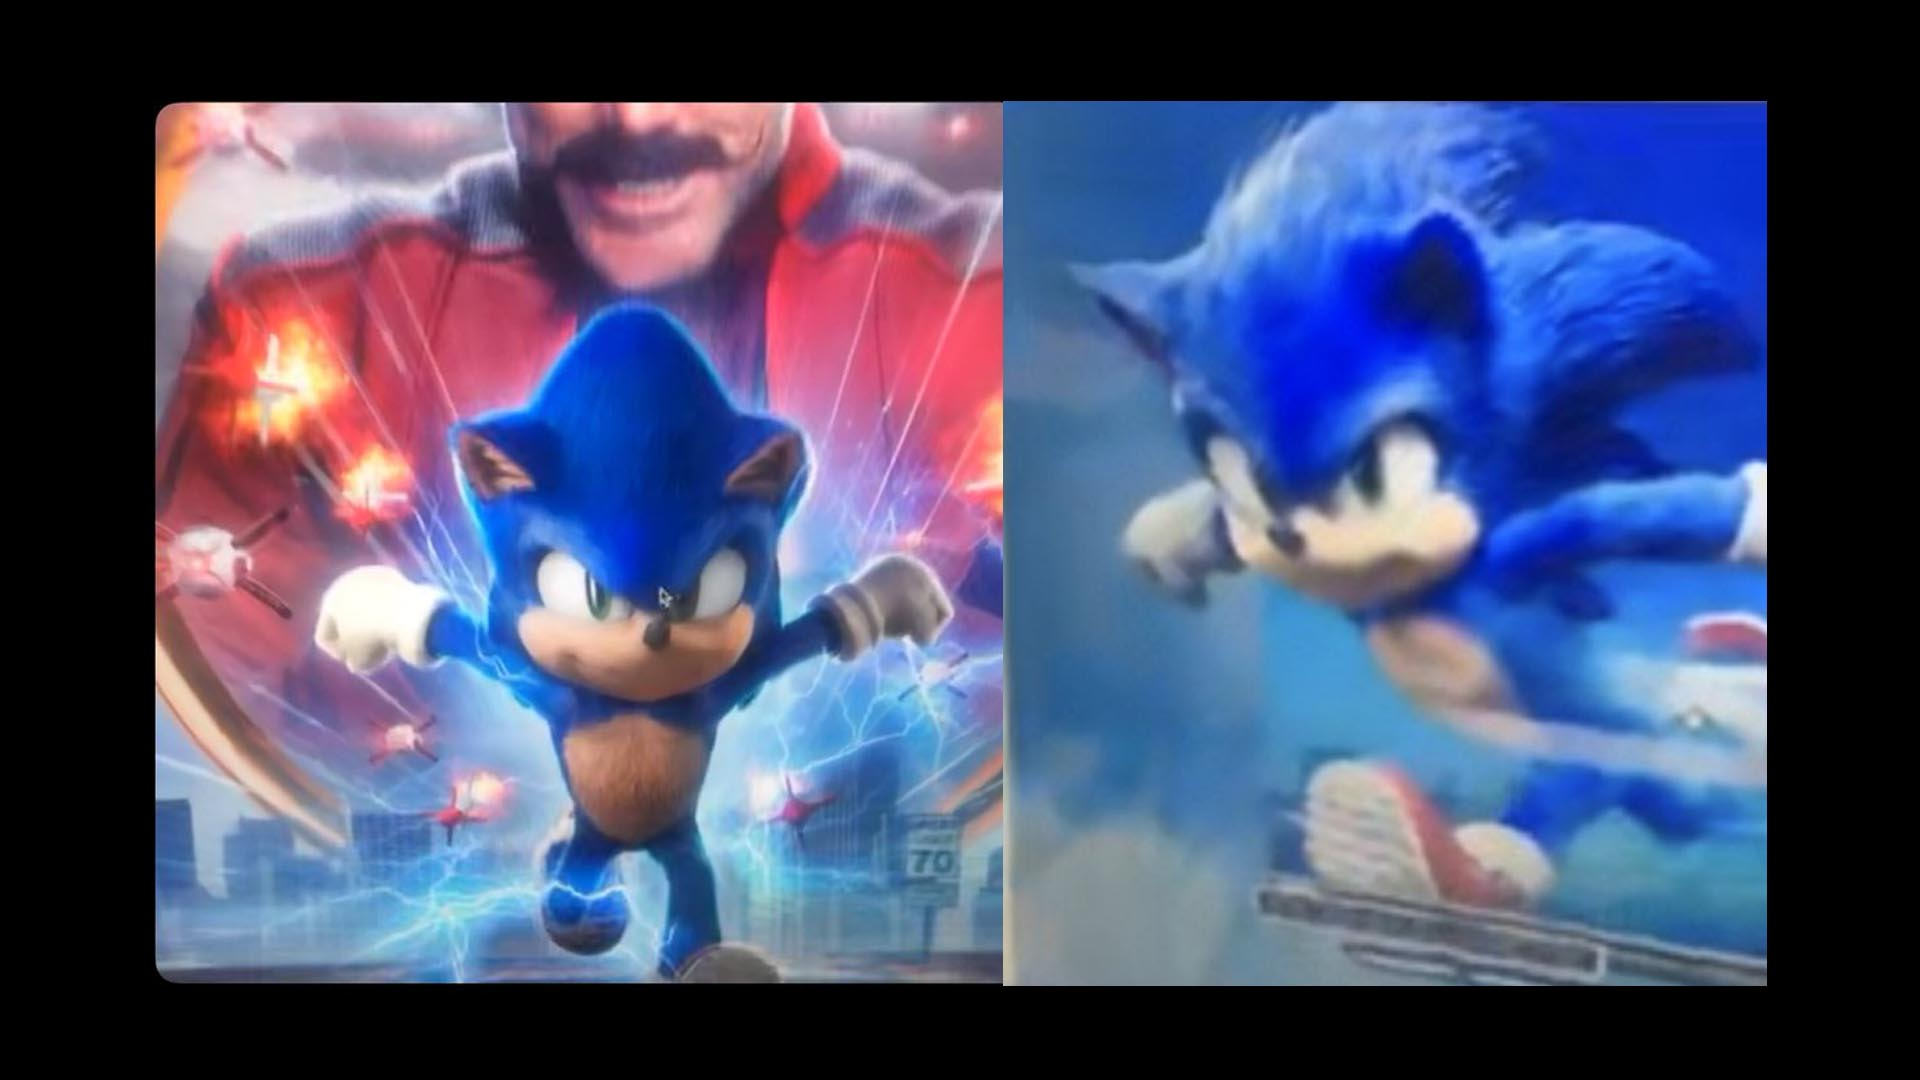 New leak may show the Sonic movie redesign | Nintendo Wire